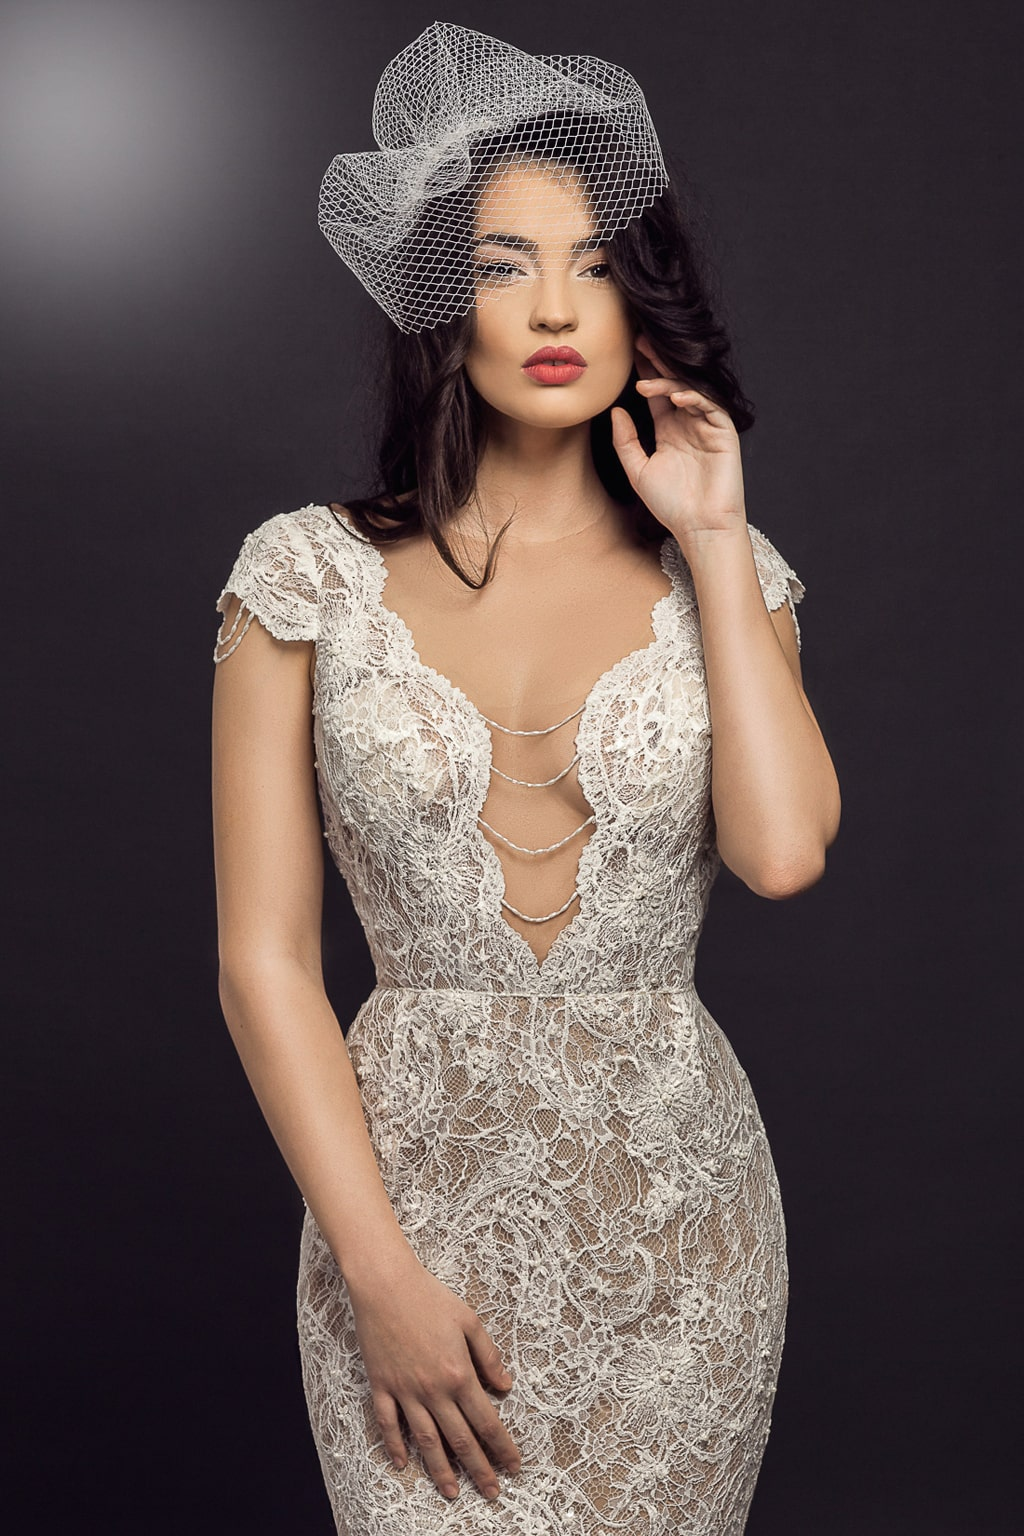 Palermo Model - Colectia Dreams - Adora Sposa